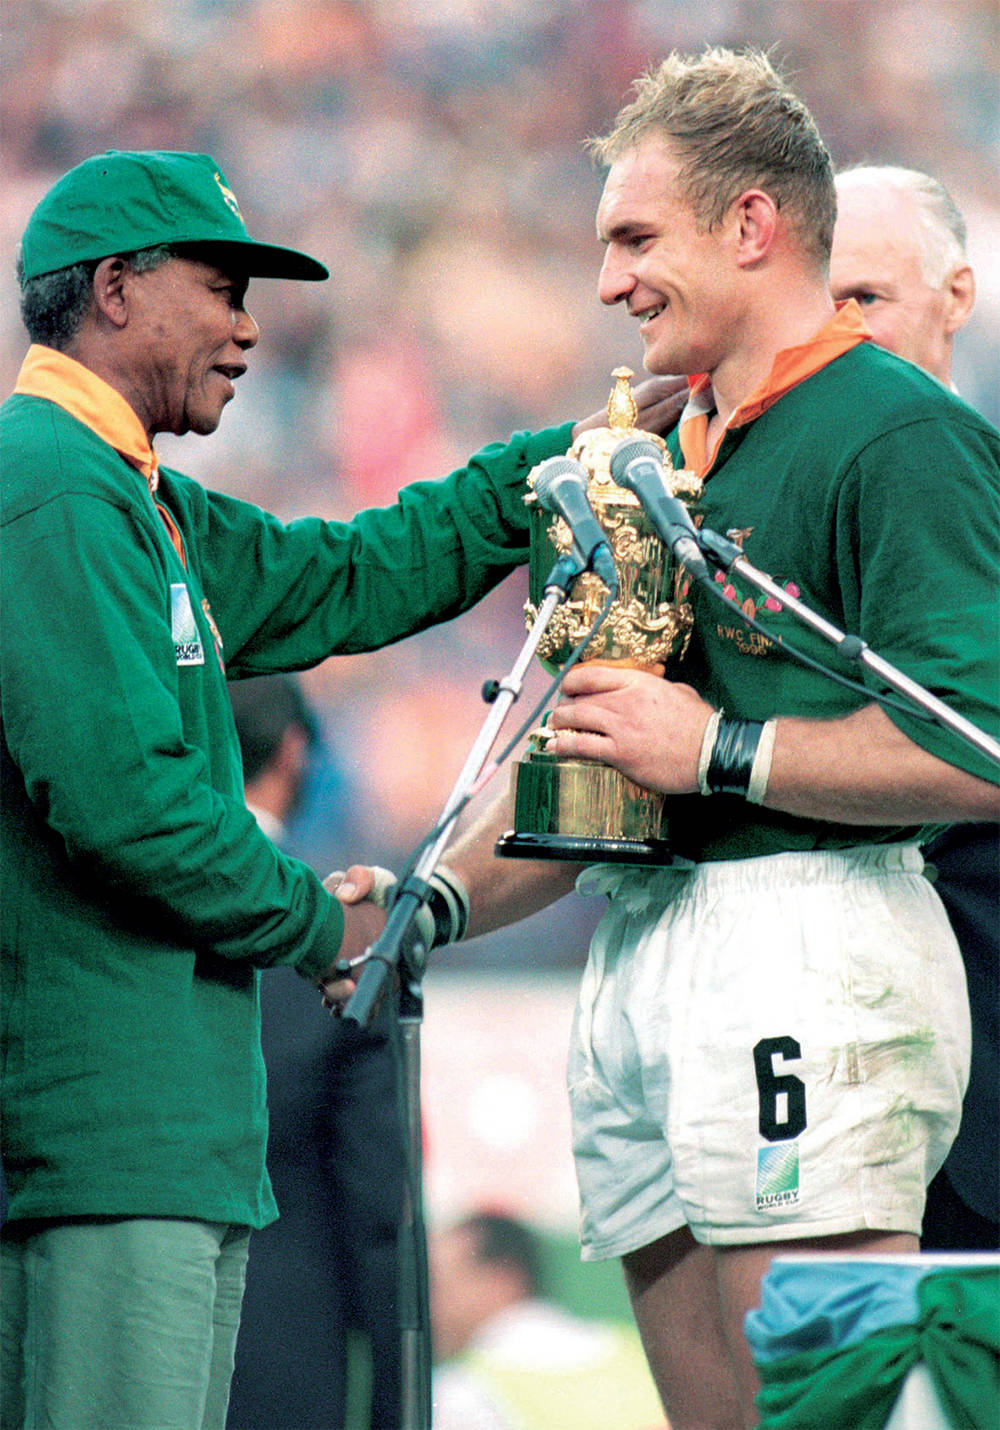 5f375df7e22 When Nelson Mandela's No 6 jersey inspired South Africa to win 1995 Rugby  World Cup